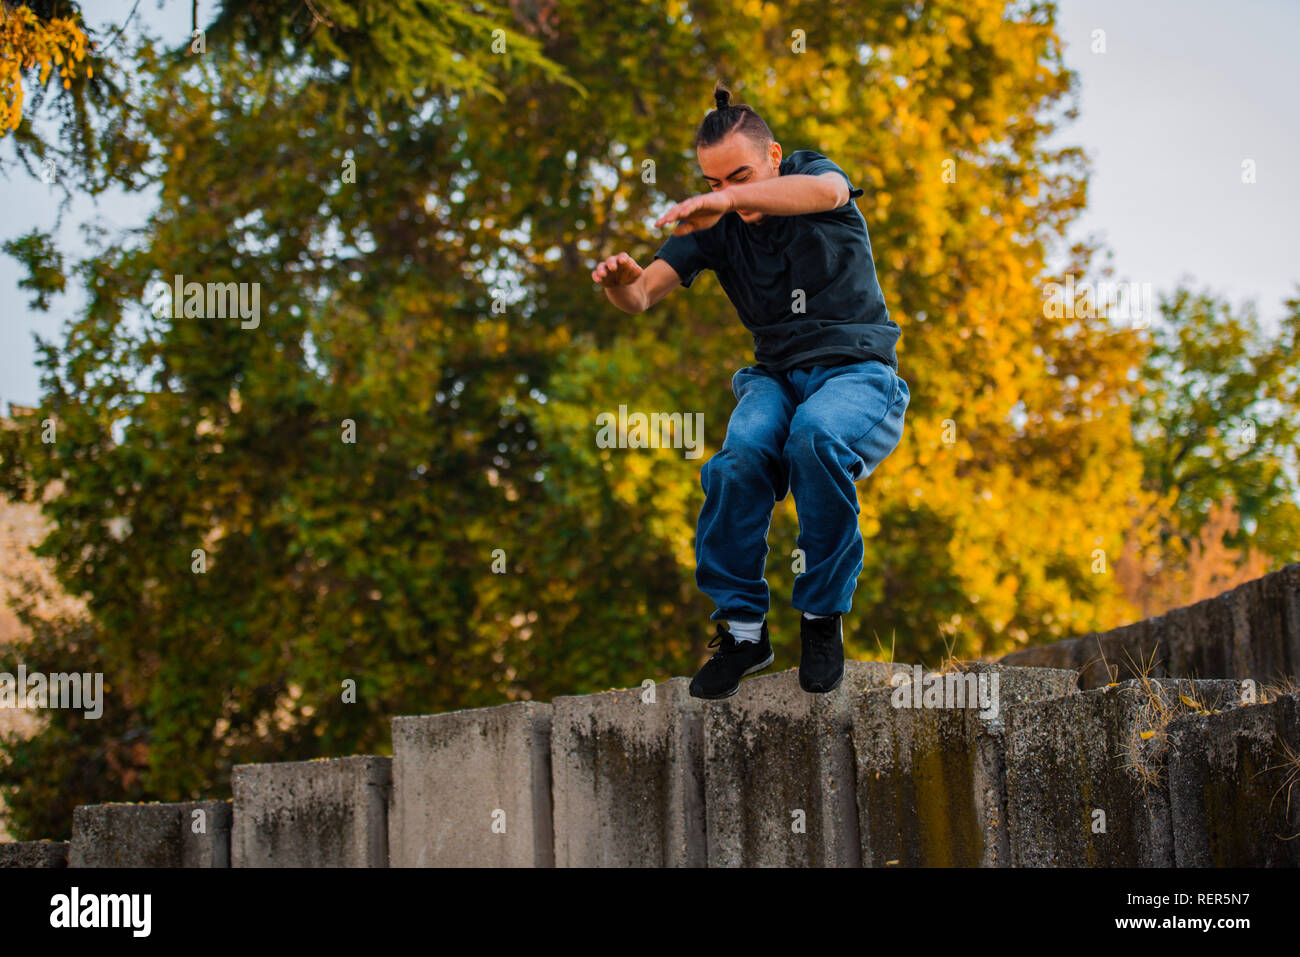 Adult man training parkour while jump over concrete wall Stock Photo